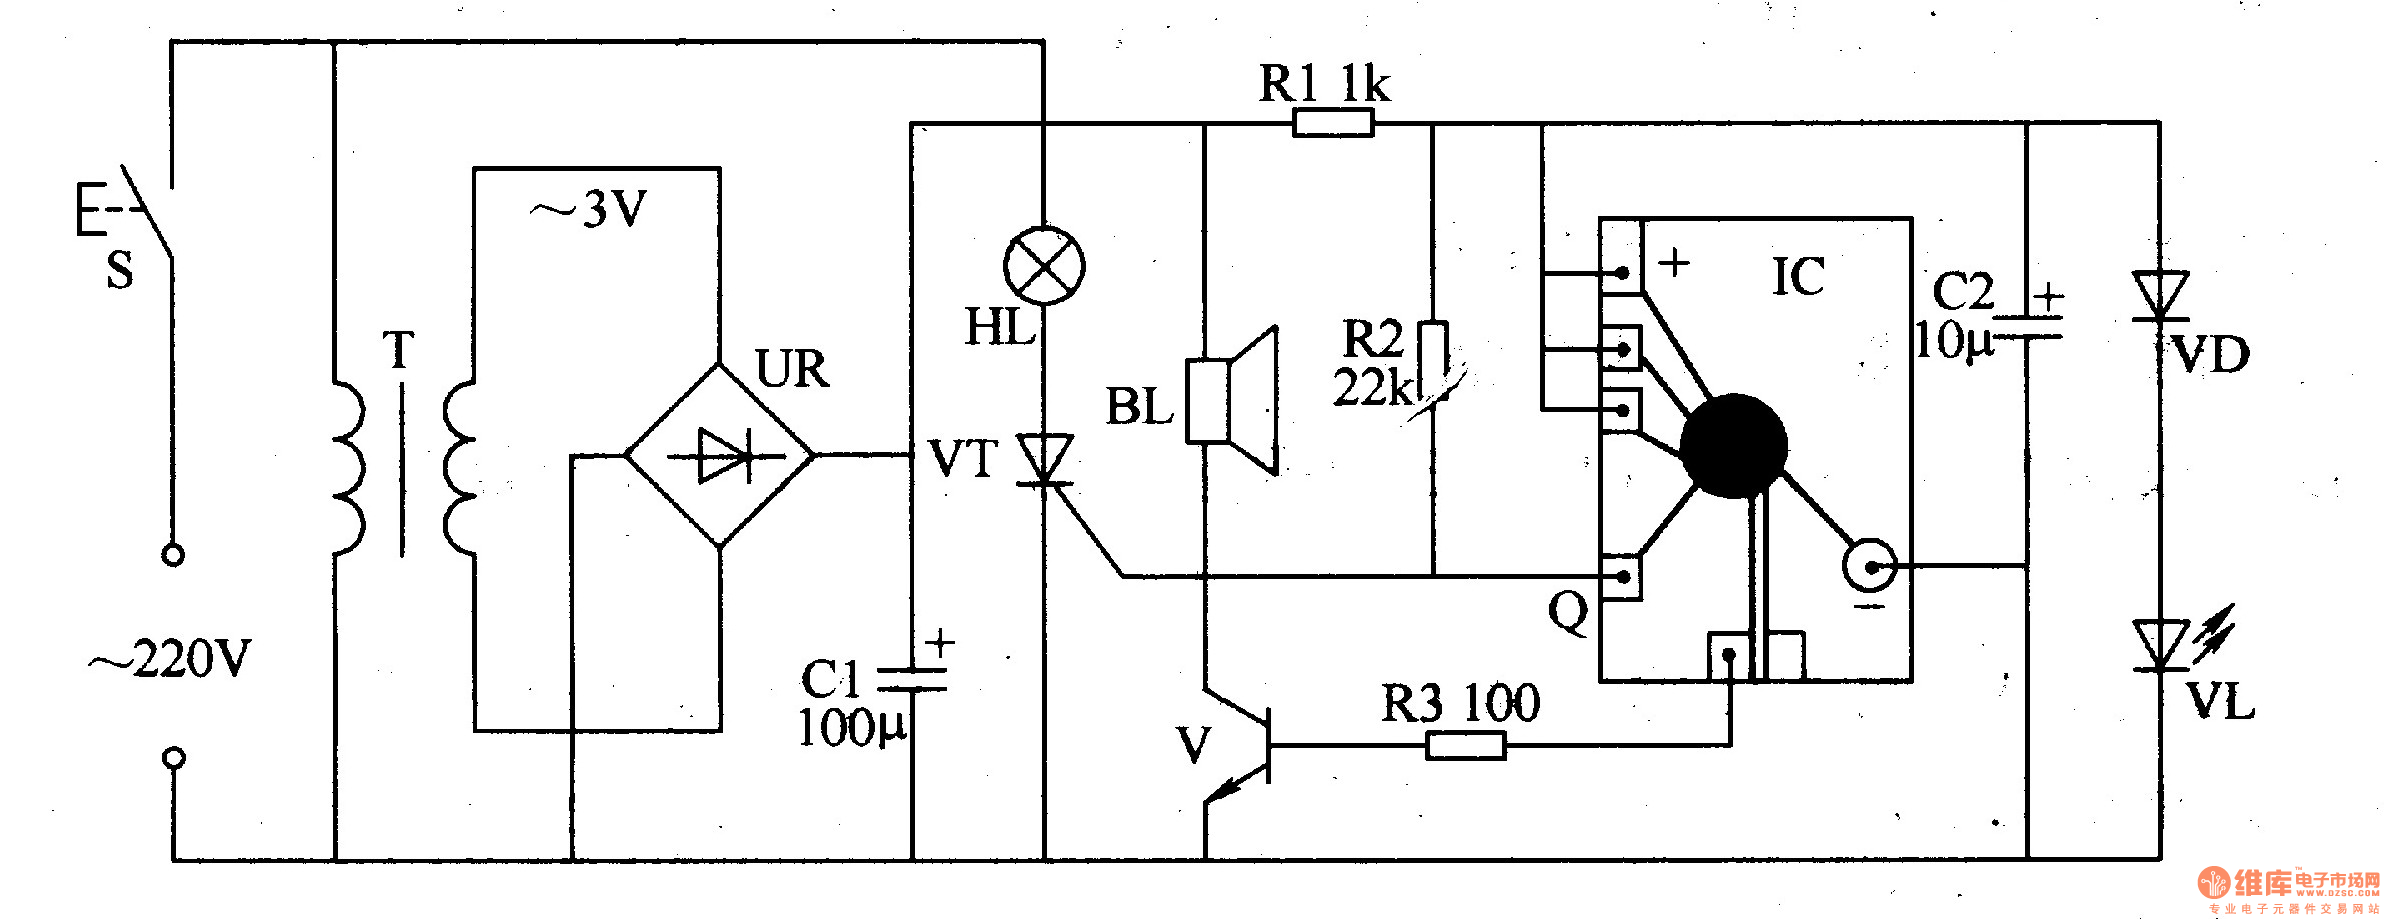 Door Bell Controlcircuit Circuit Diagram Seekiccom Schema Wiring Index 5 555 Optical Electronic Doorbell 1 Electrical Equipment